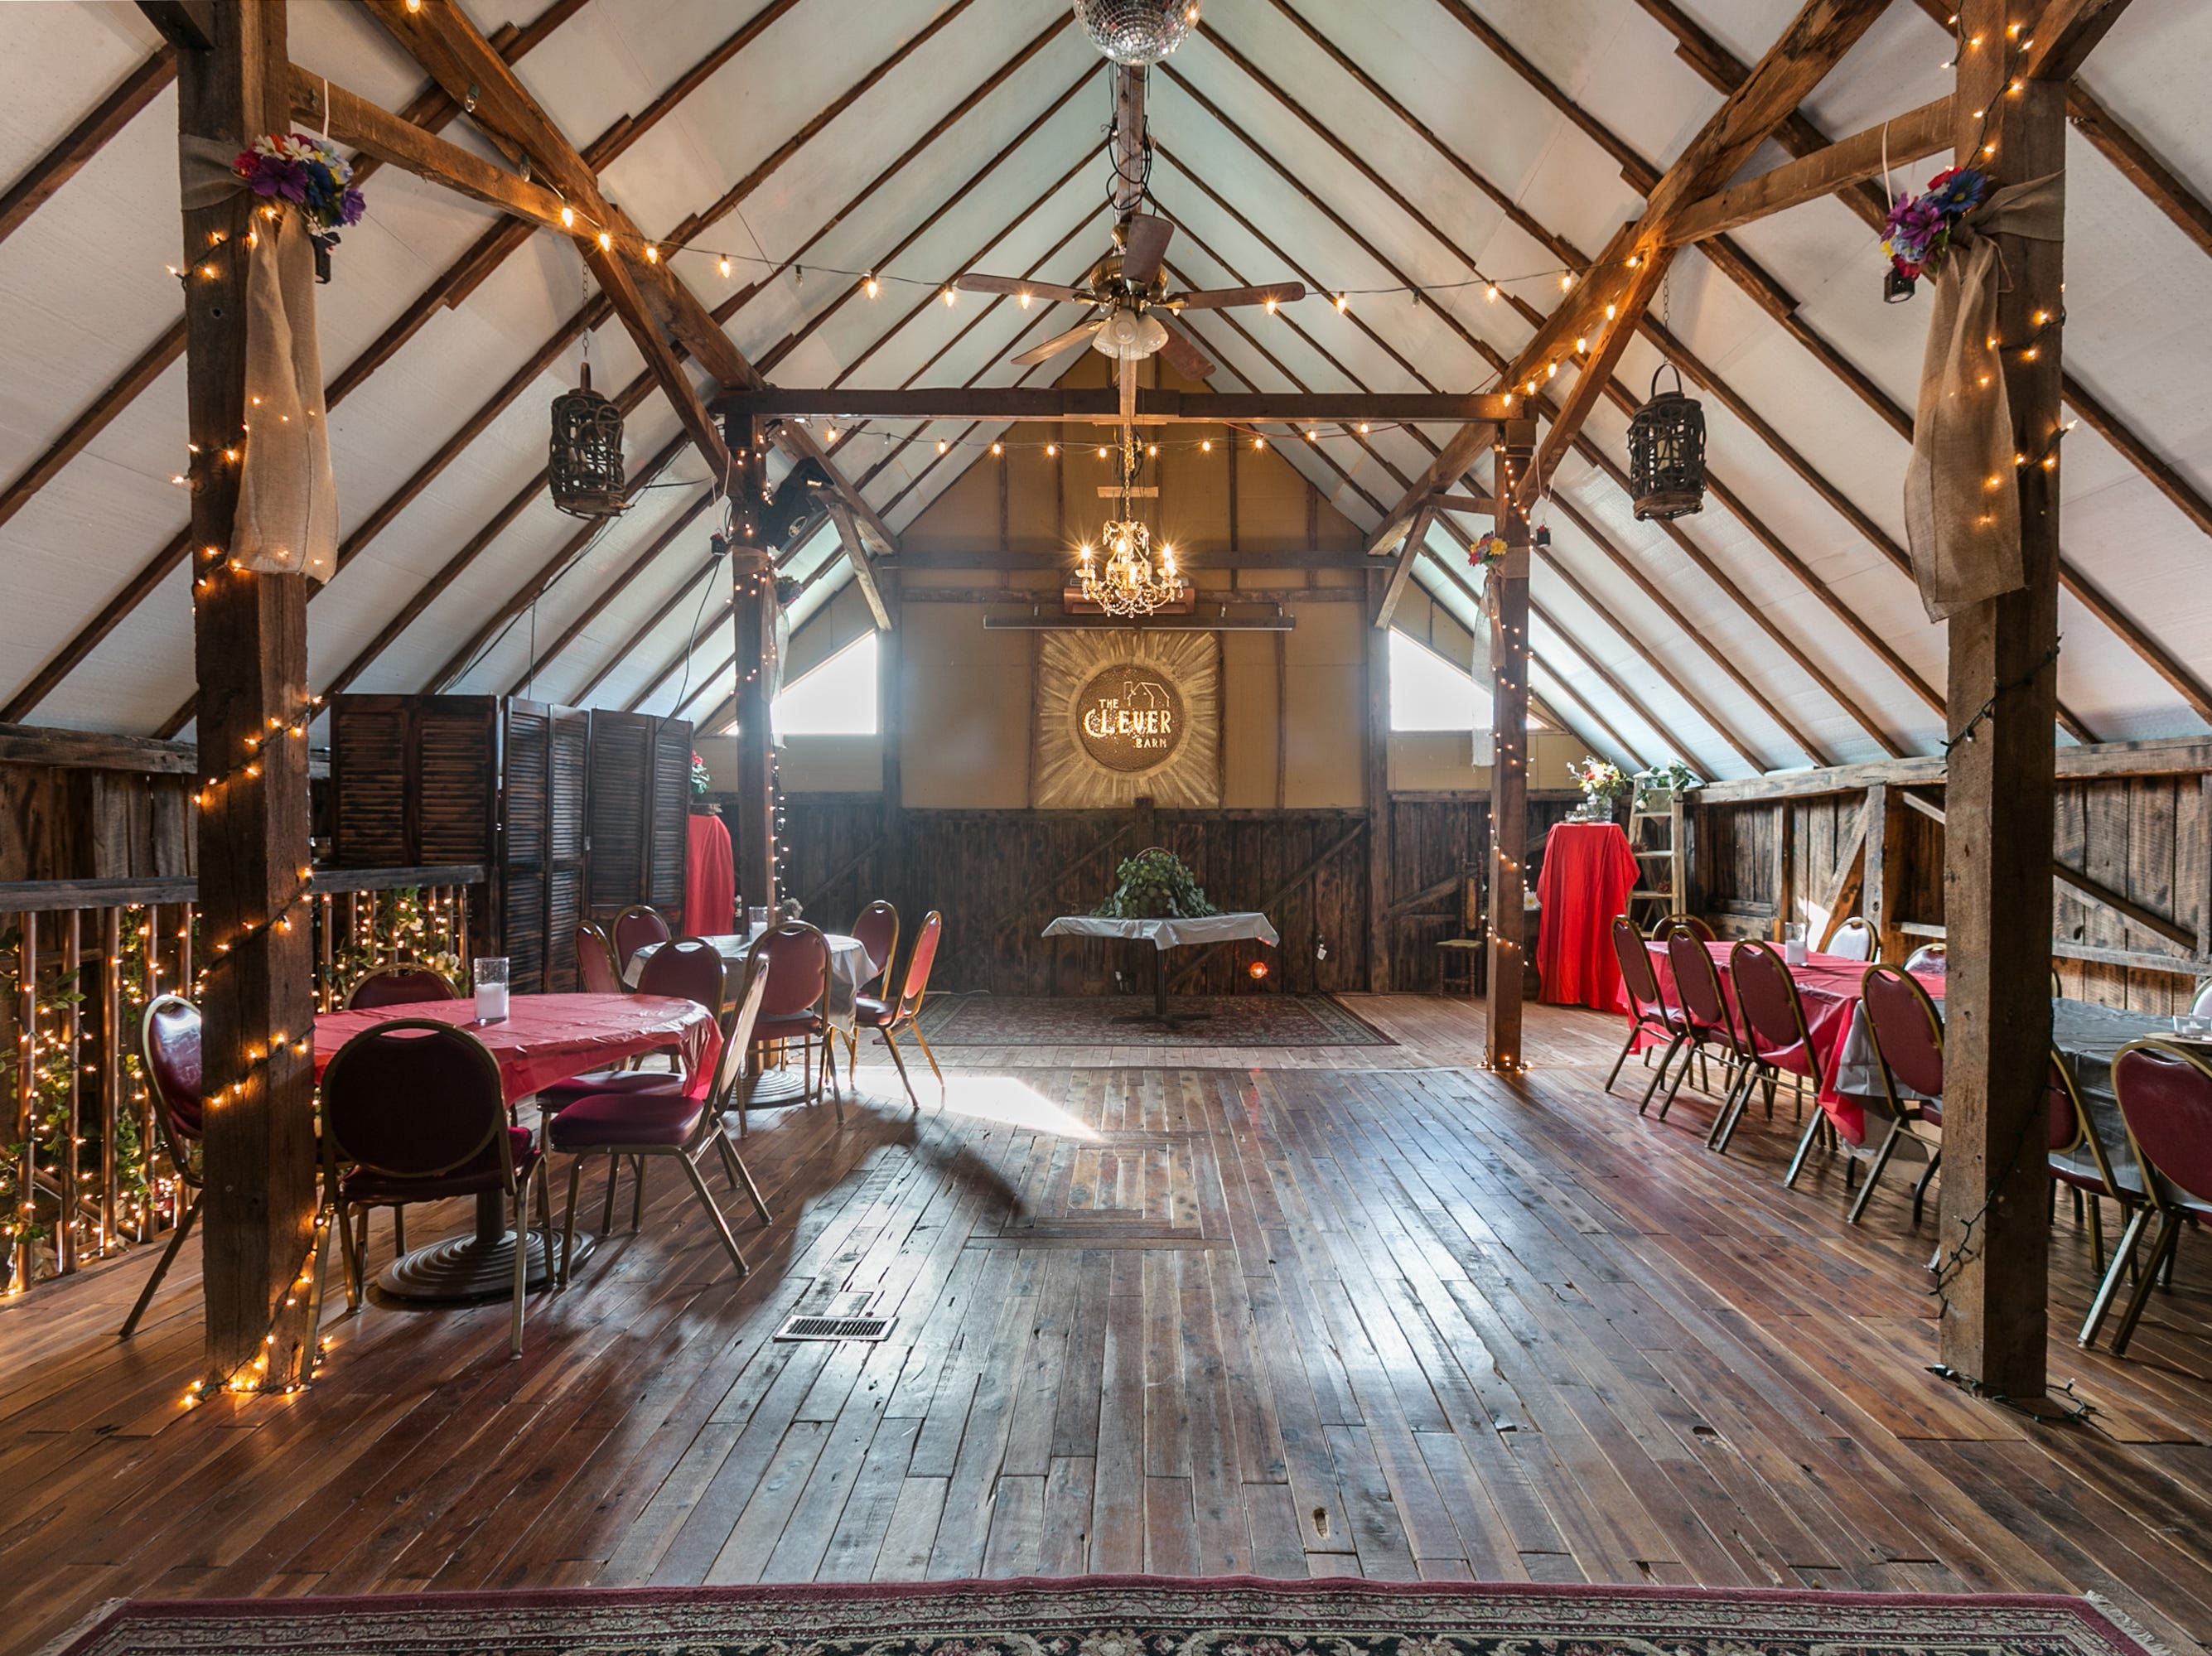 The upstairs event area features a large pull-down screen with projection, a sound system, dance floor and opens onto a large deck overlooking the countryside. The space also is handicap accessible.